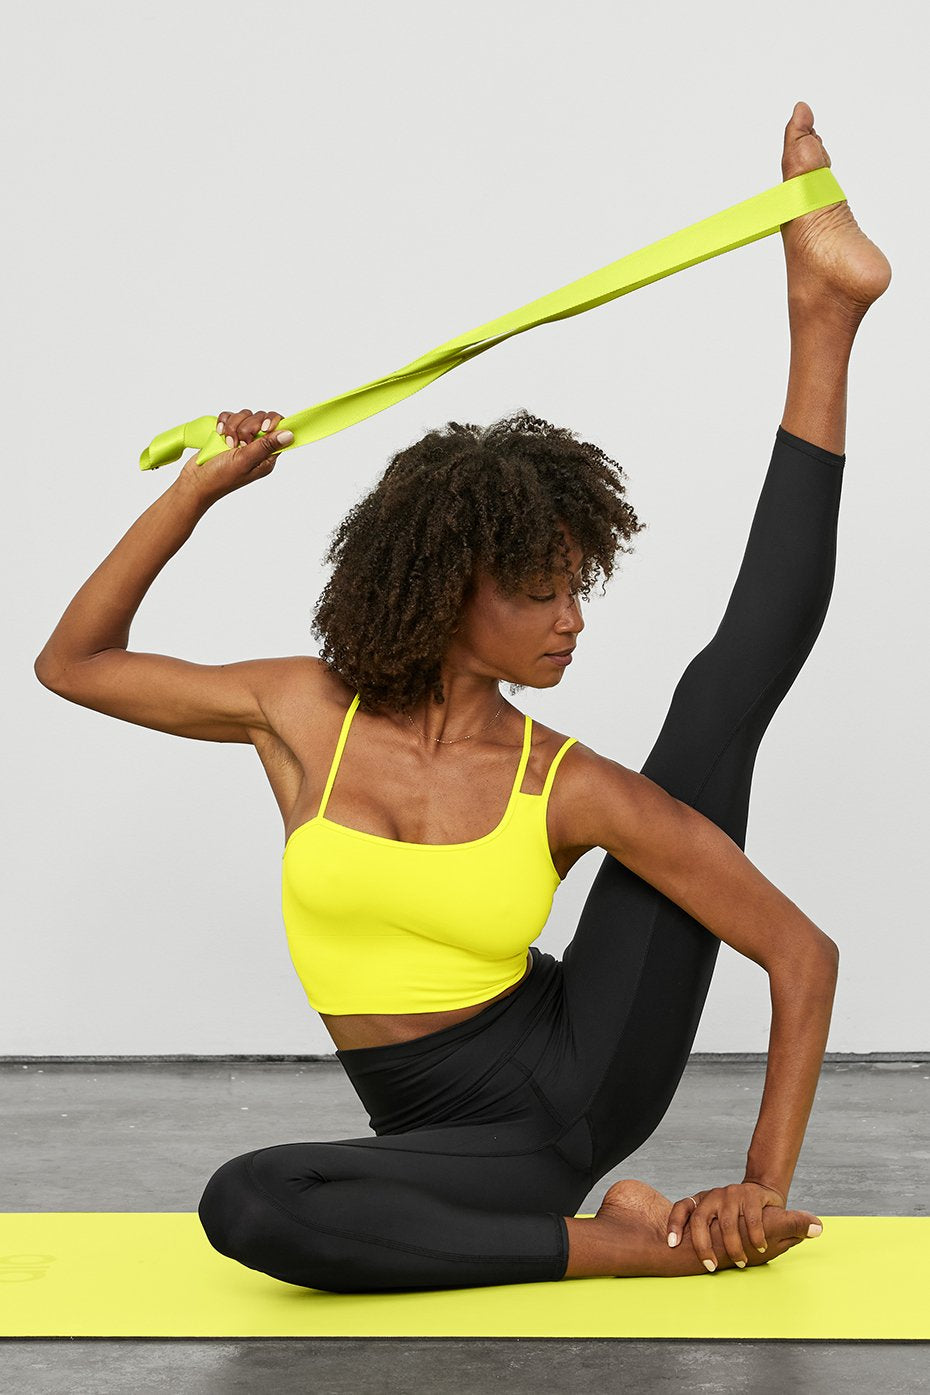 Woman using a highlighter yellow yoga strap to deepen her practice on the mat.